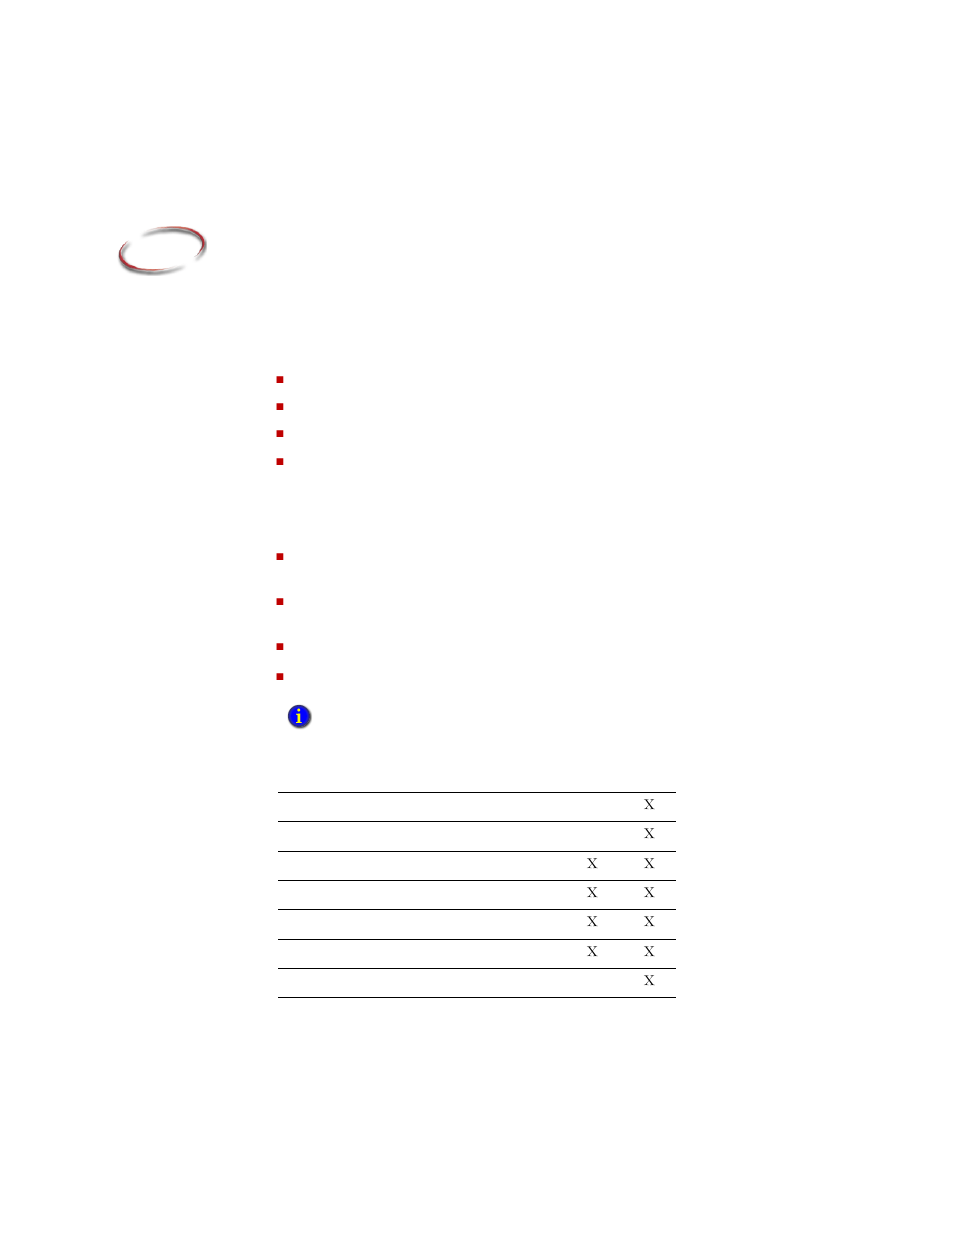 system requirements rockwell automation factorytalk view machine rh manualsdir com factorytalk view machine edition user's guide Rockwell FactoryTalk View Manual